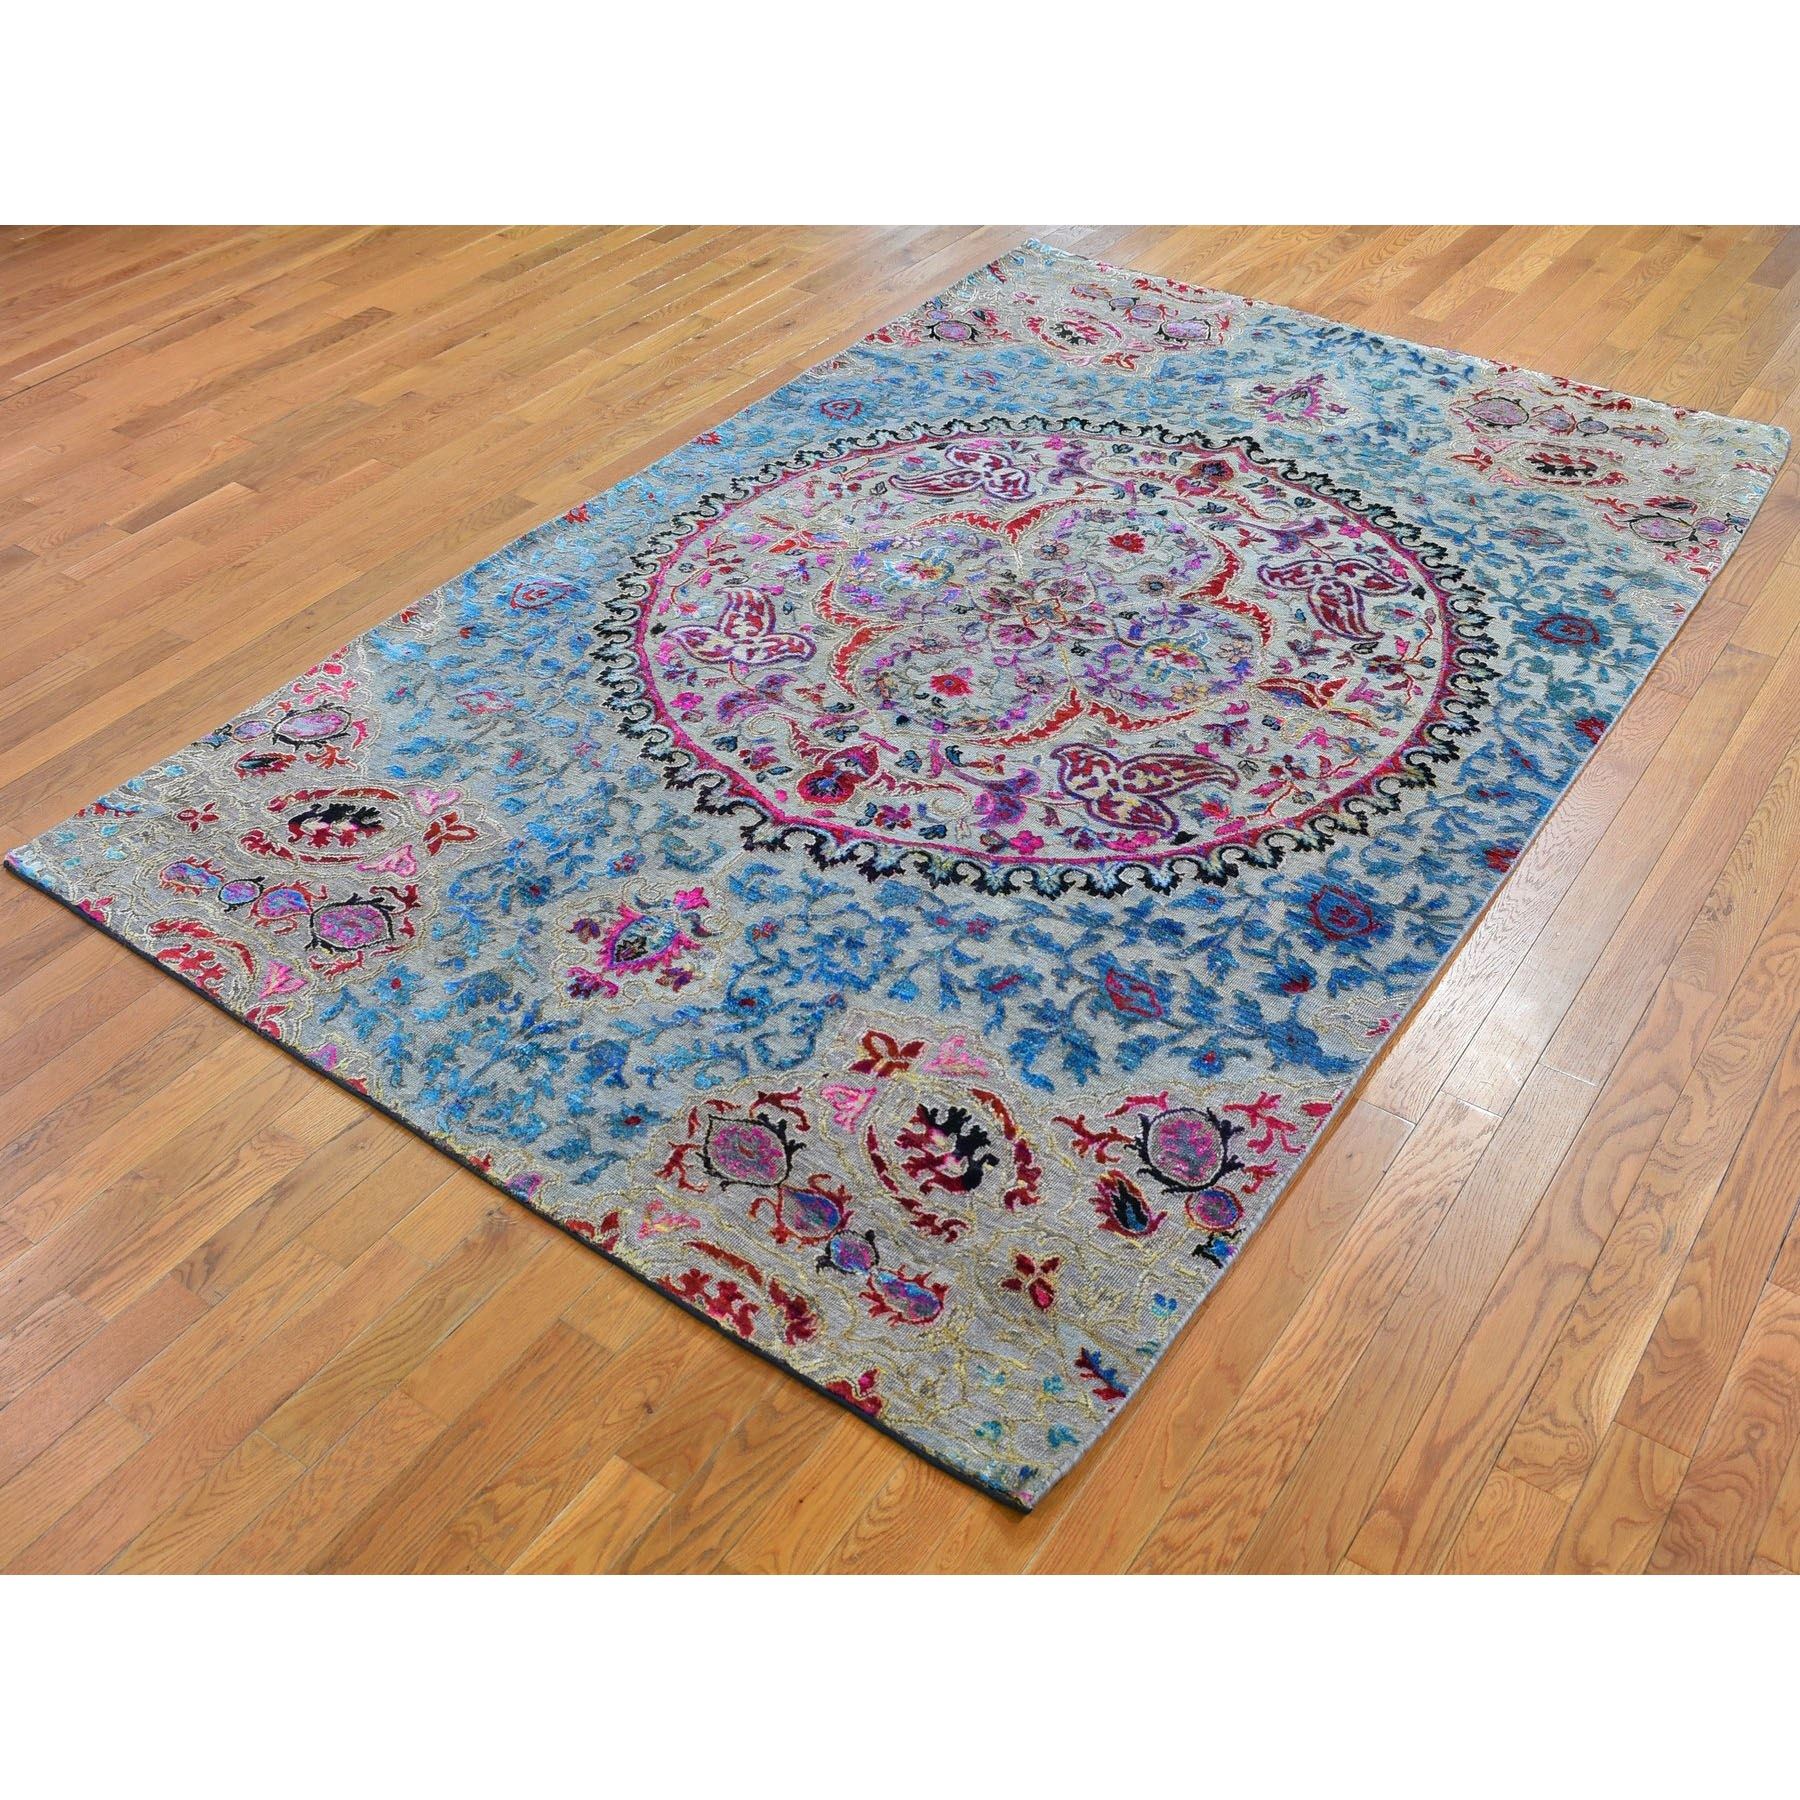 6-x9- Sari Silk and Textured Wool Colorful Maharaja Design Hand Knotted Oriental Rug